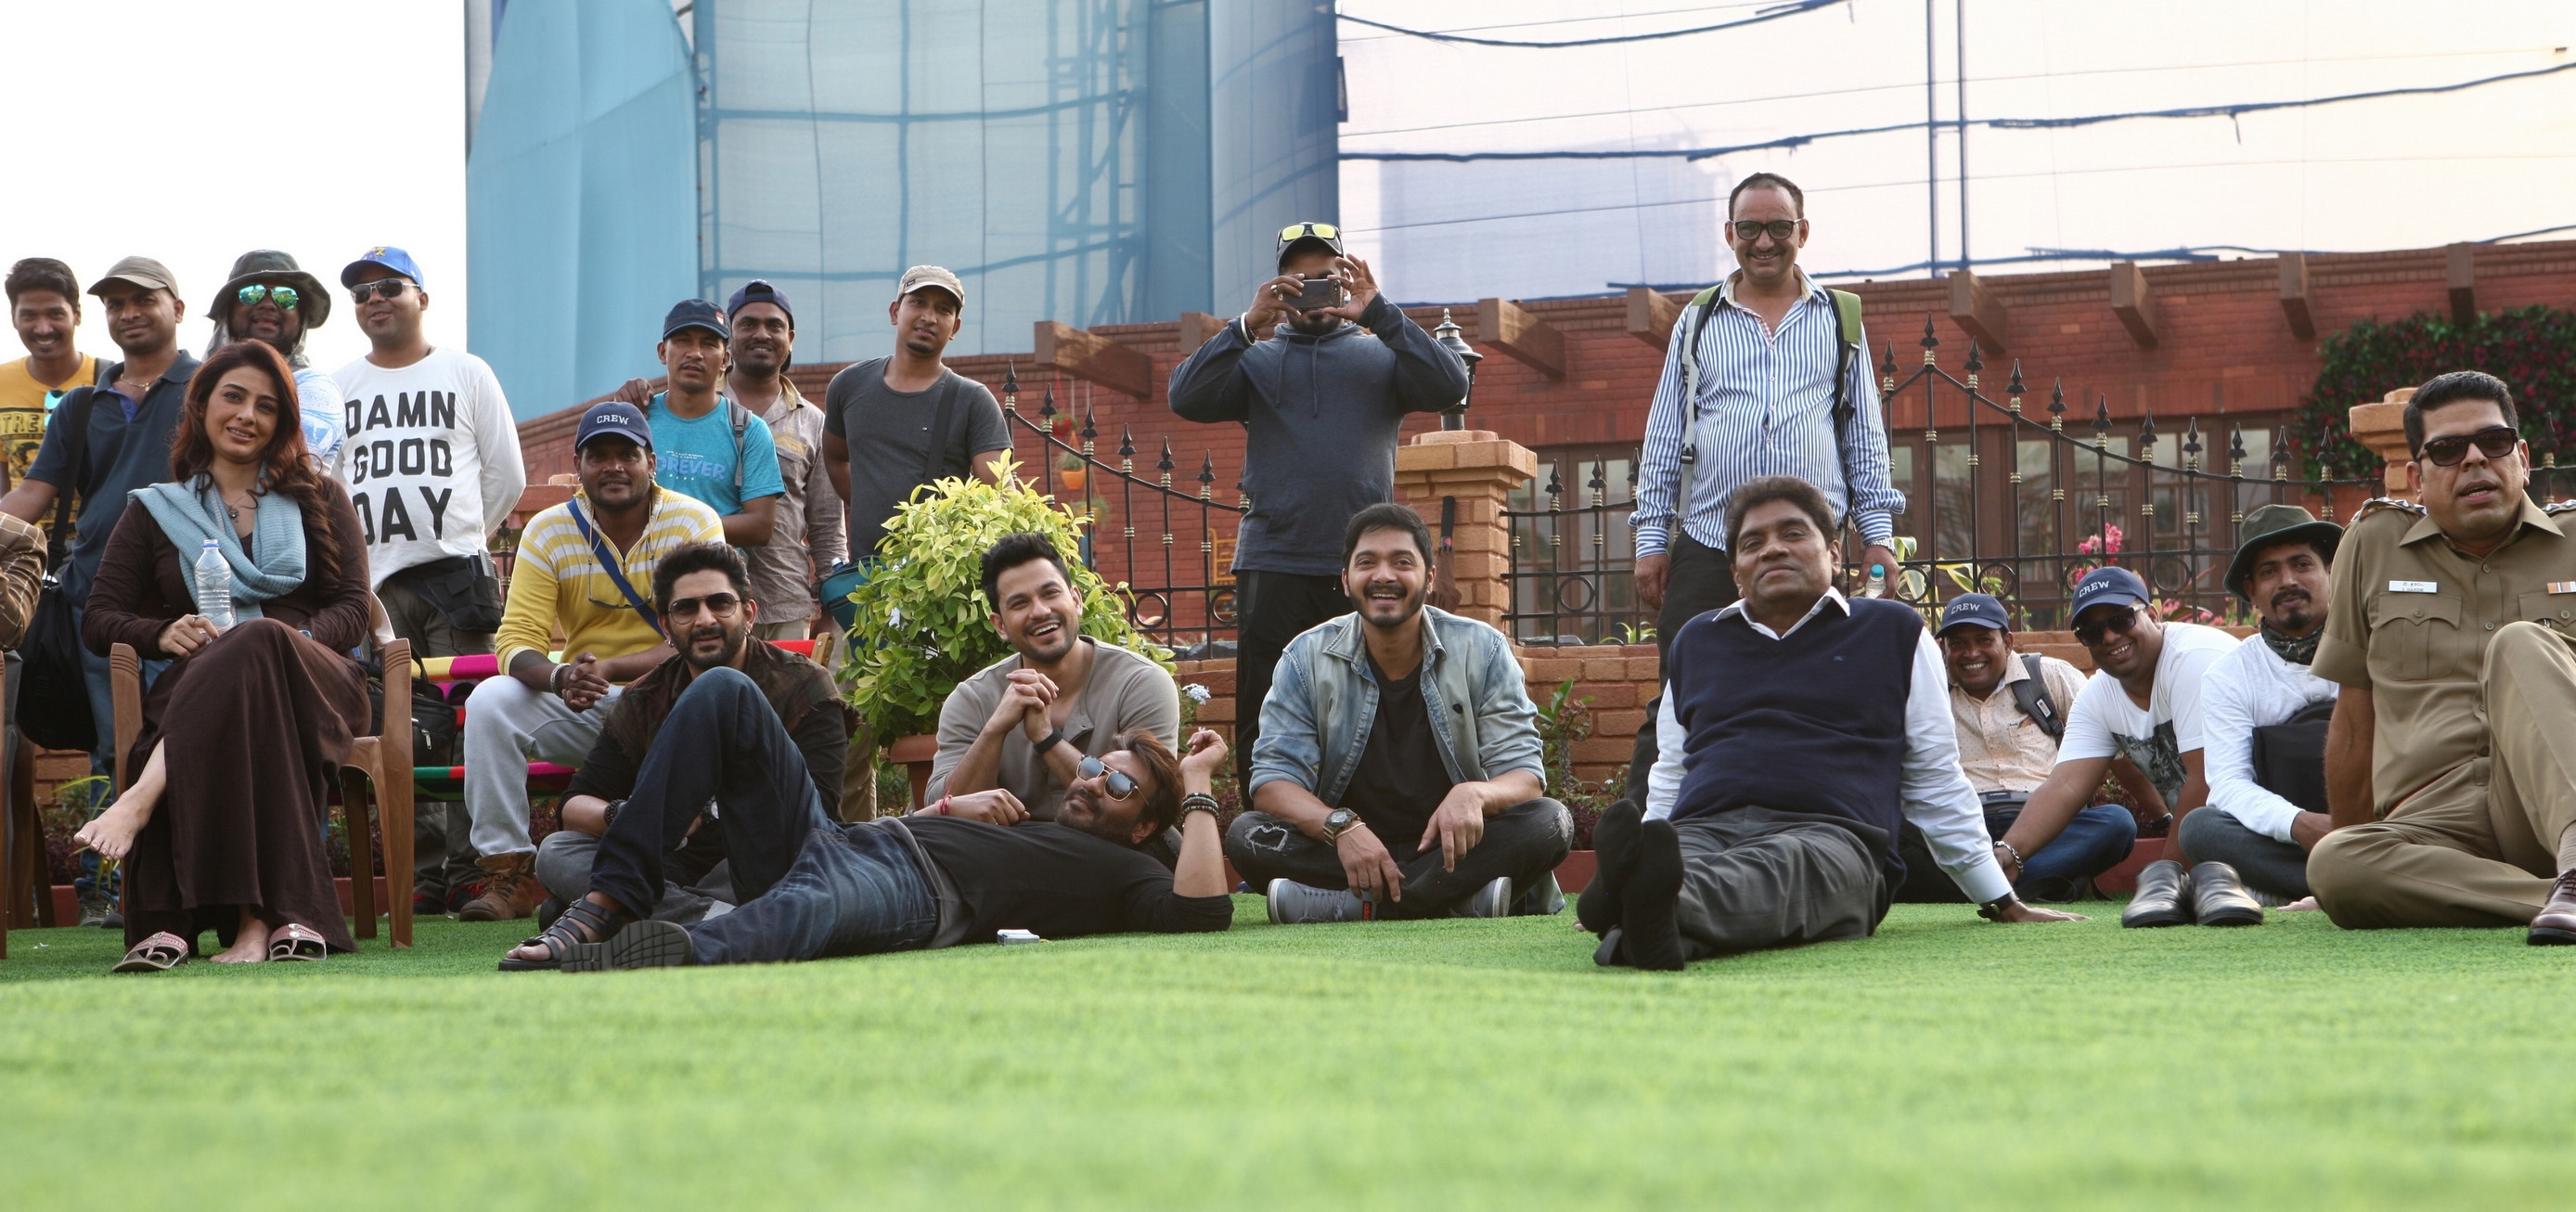 Tabu, Ajay Devgn, Kunal Khemu, Johnny Lever, and Shreyas Talpade in Golmaal Again (2017)